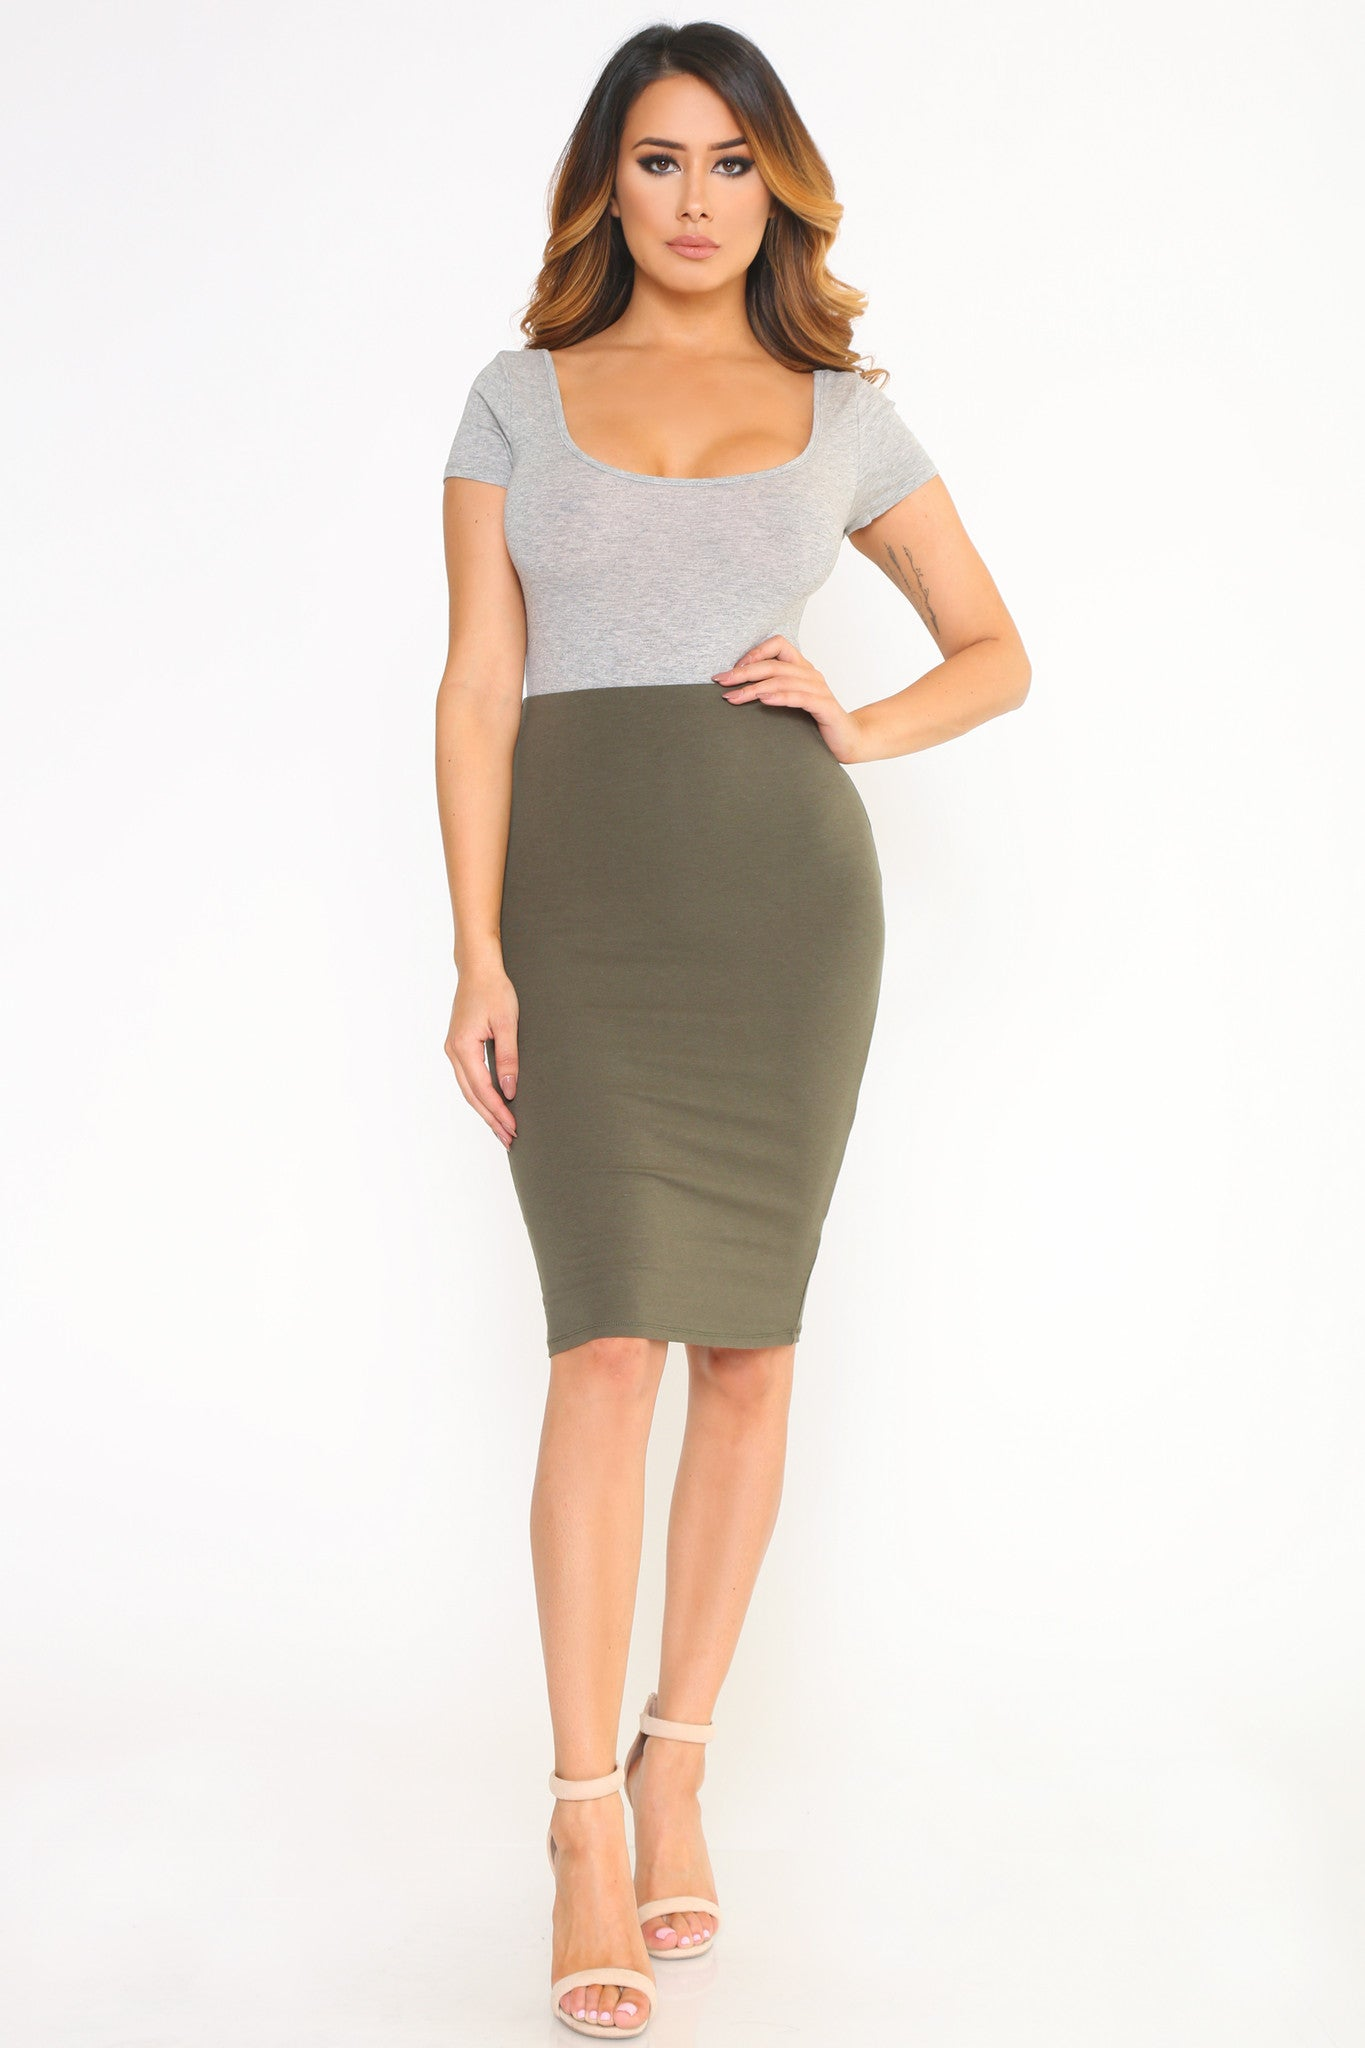 ELLA SKIRT - Glam Envy - 2